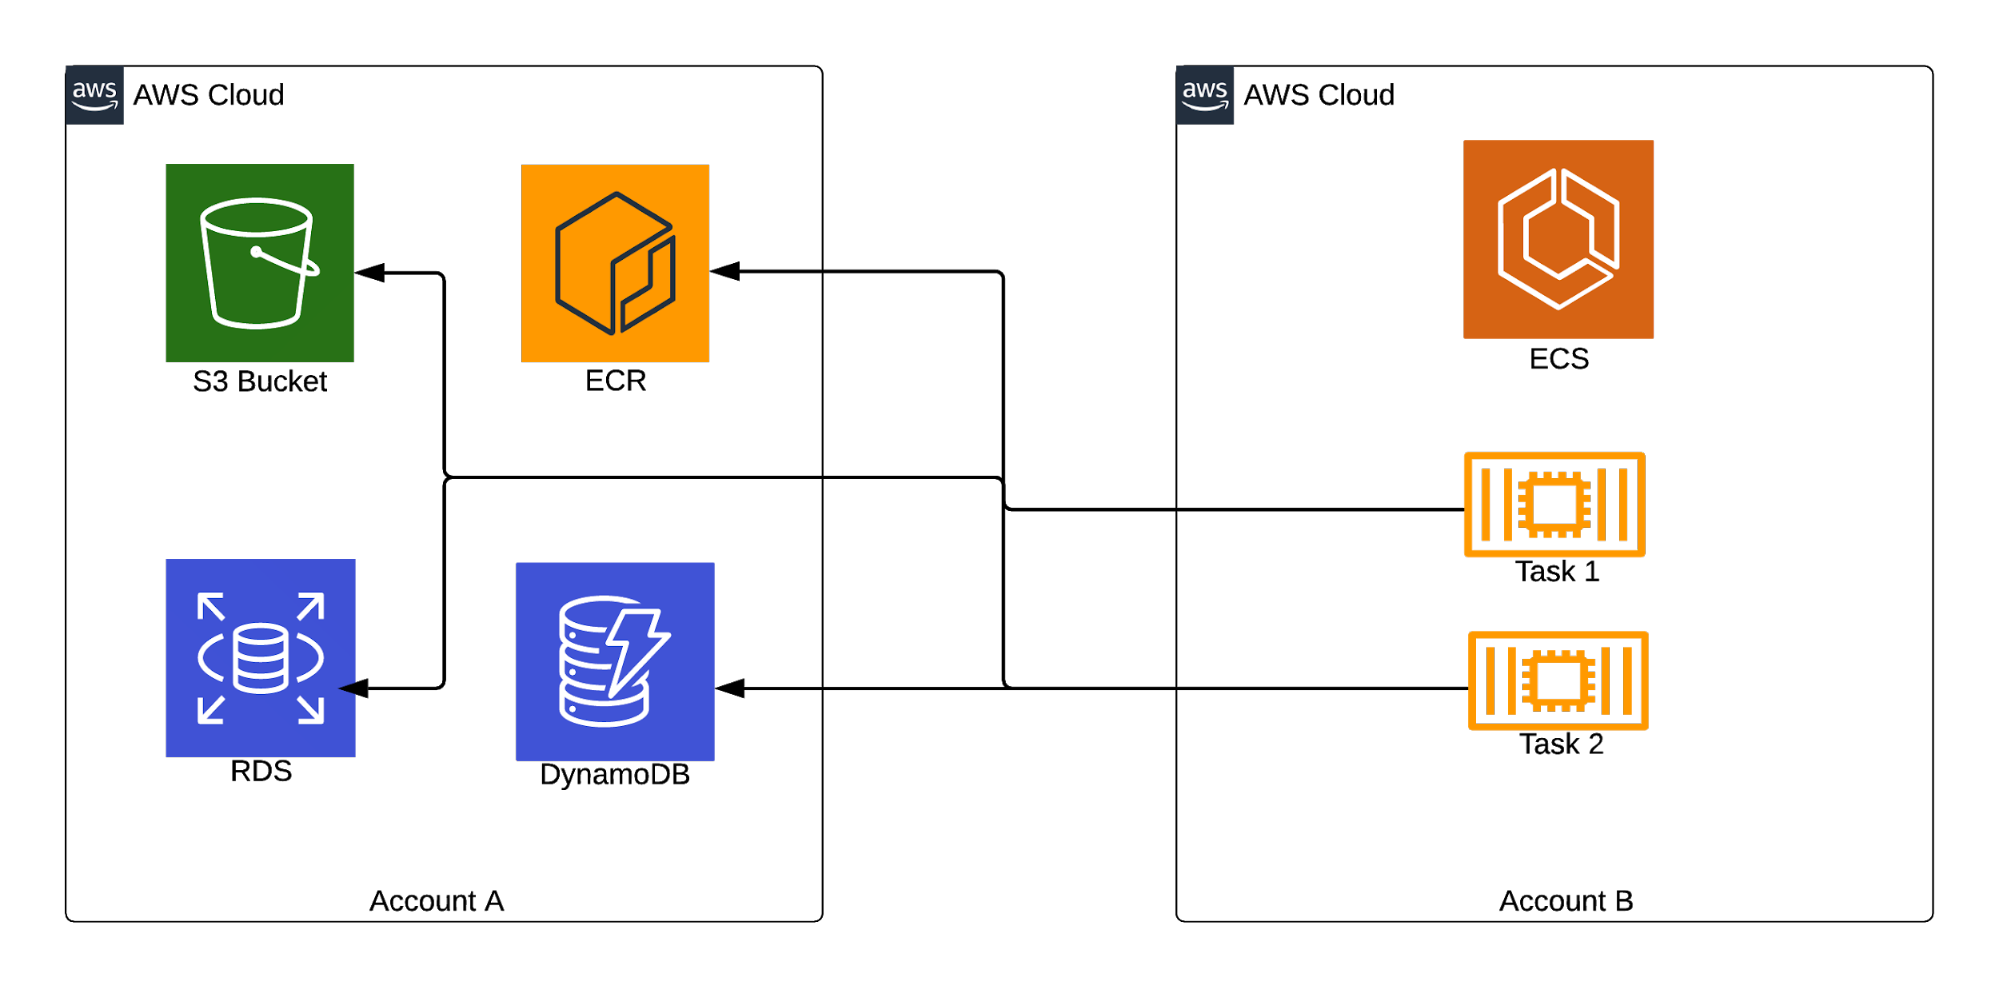 Share cloud resources across AWS accounts | AWS IAM | nClouds